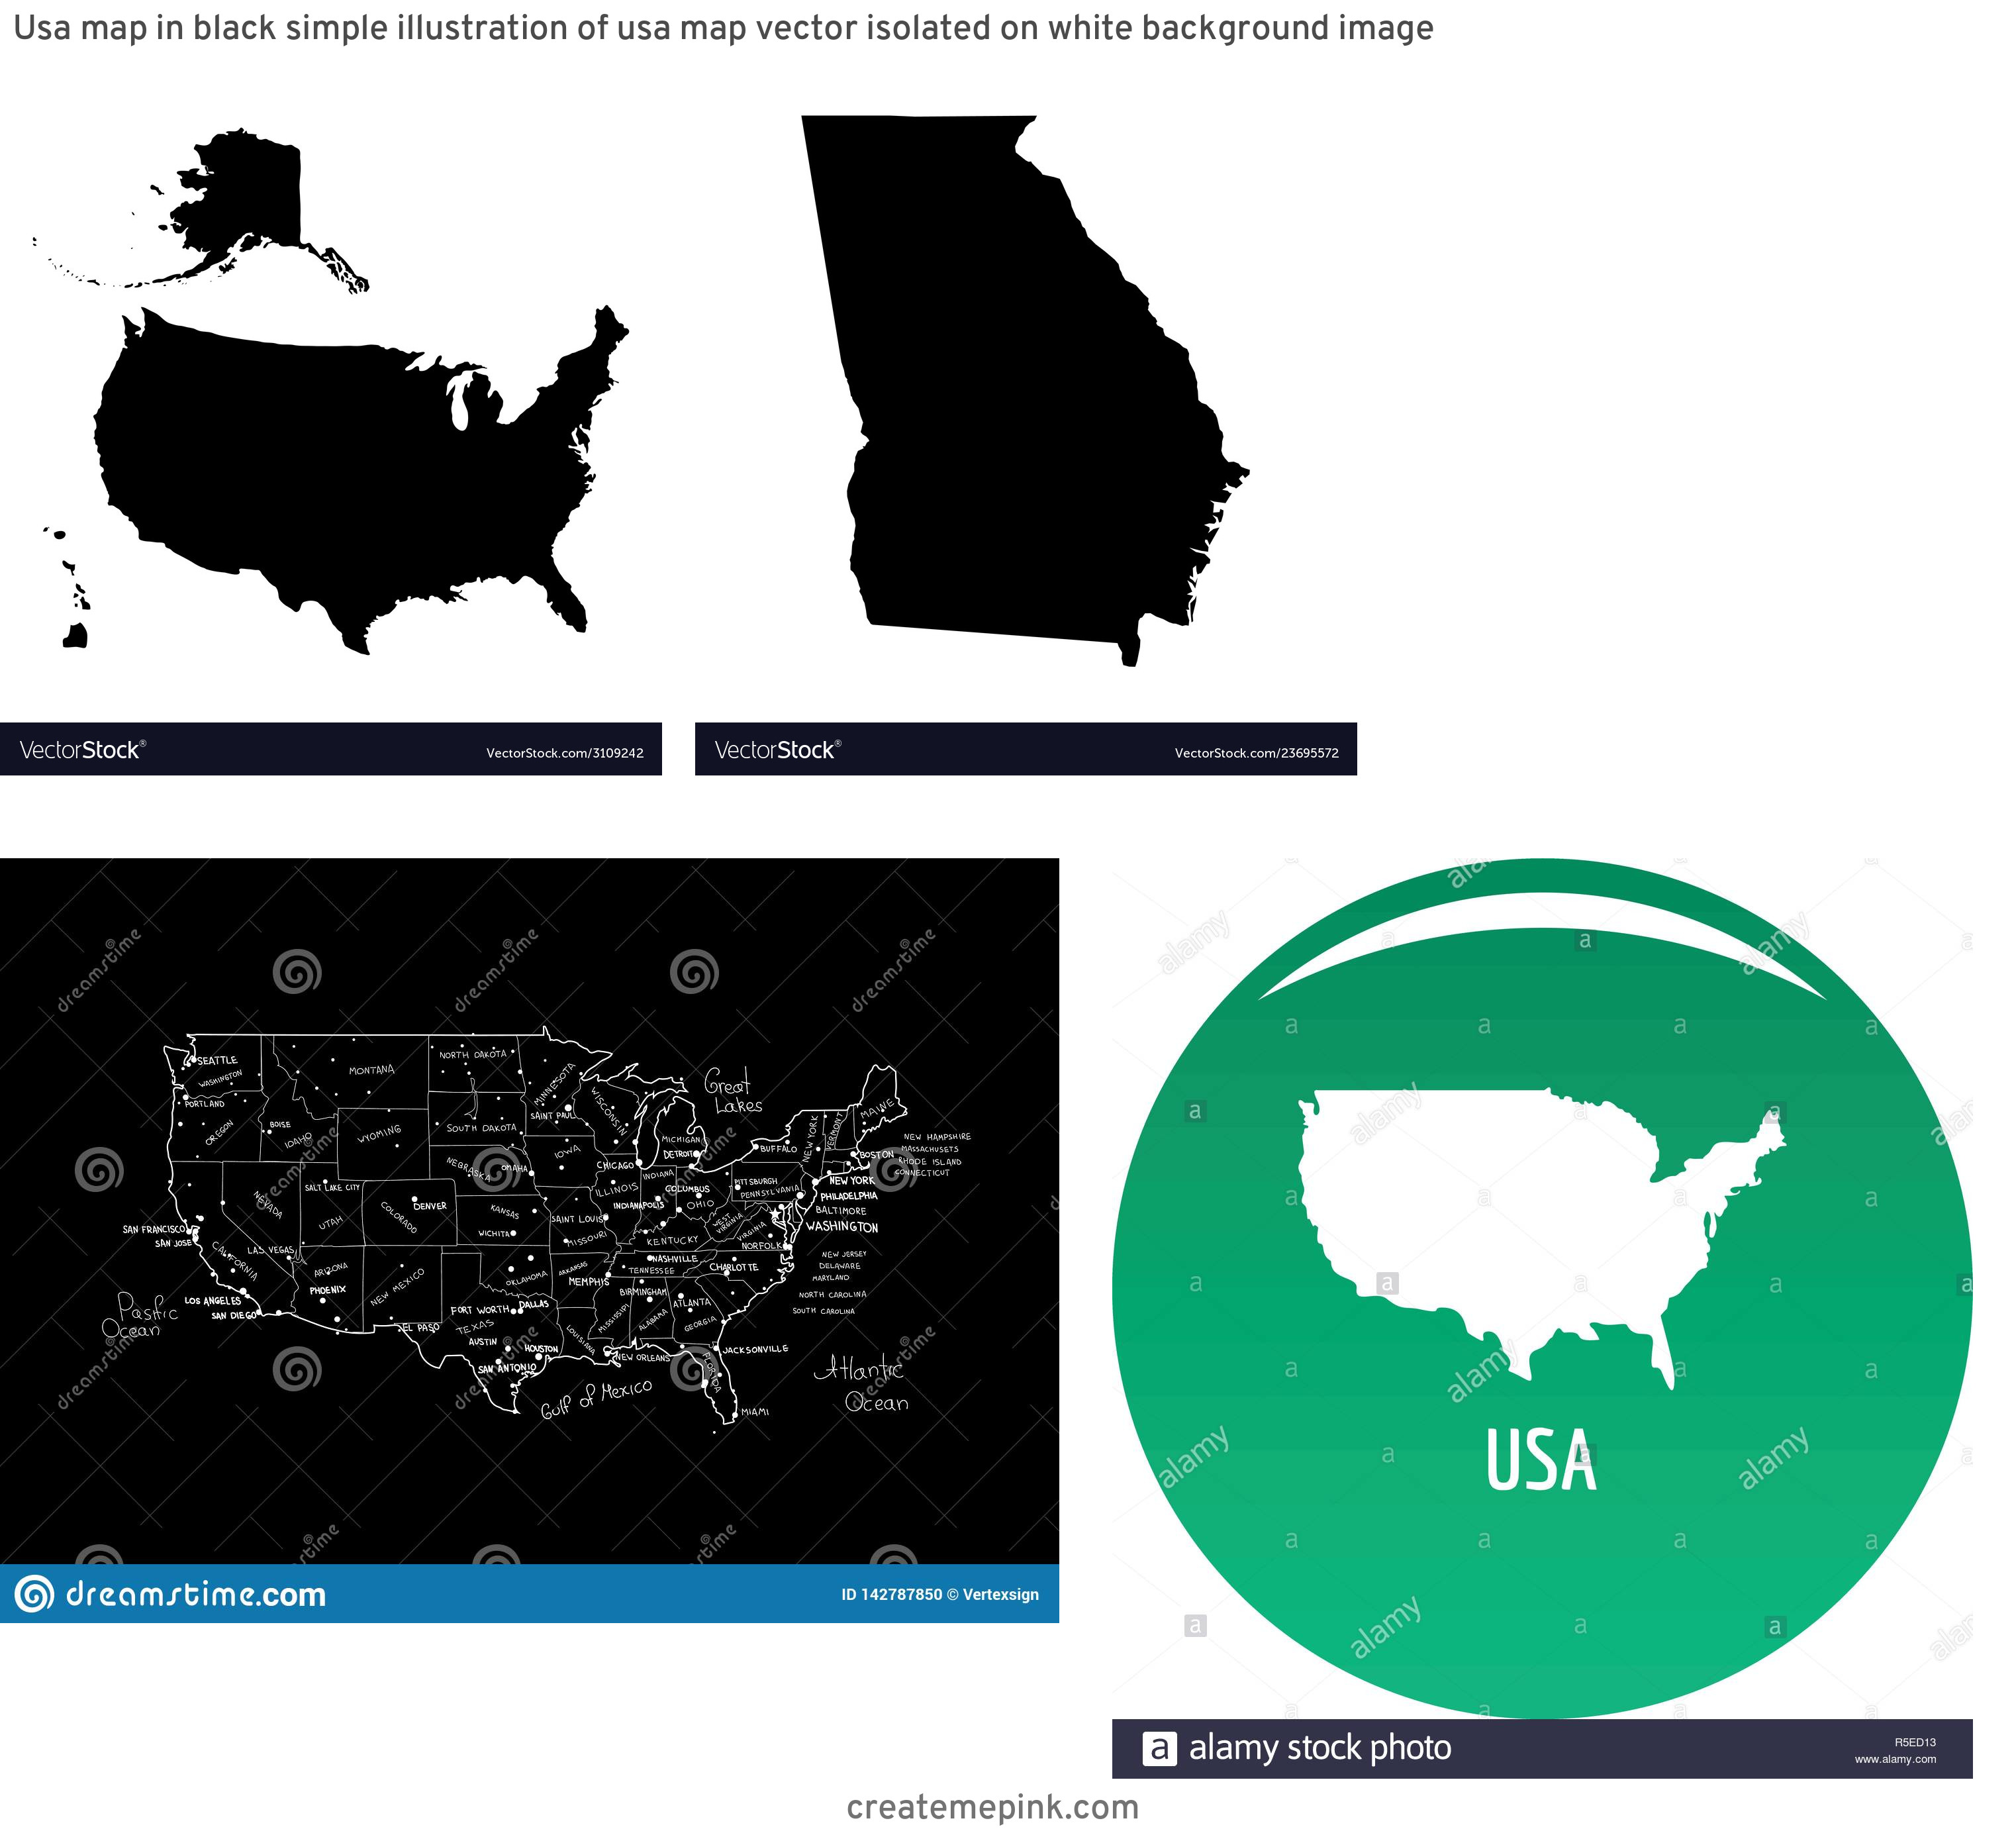 USA Map Vector Black: Usa Map In Black Simple Illustration Of Usa Map Vector Isolated On White Background Image